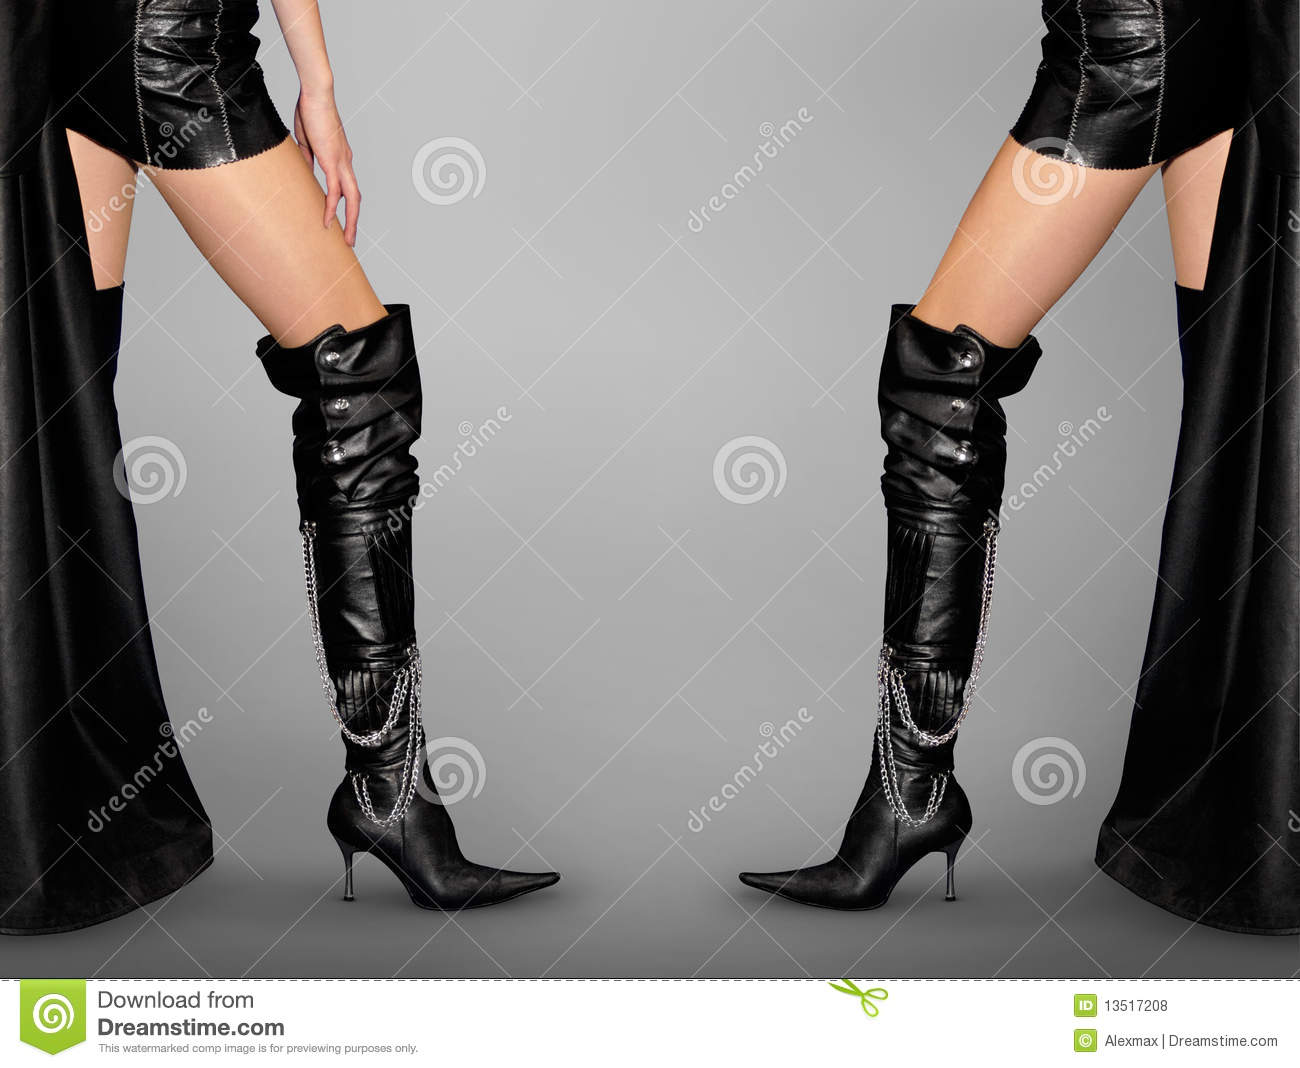 Legs and Stiletto Boots